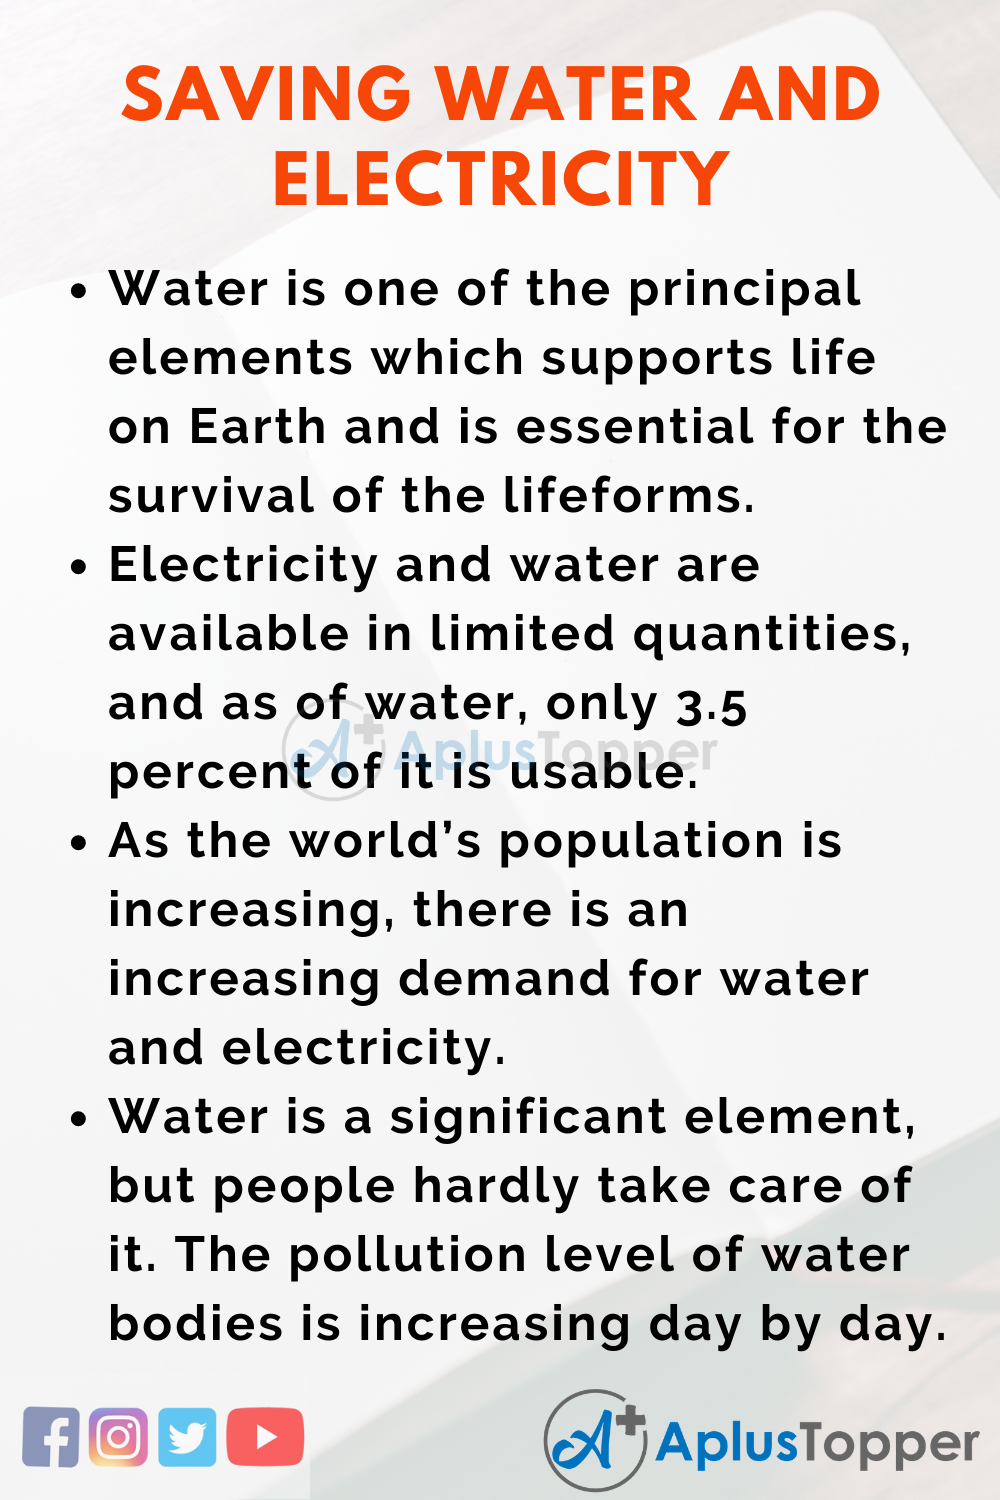 Essay on Saving Water and Electricity